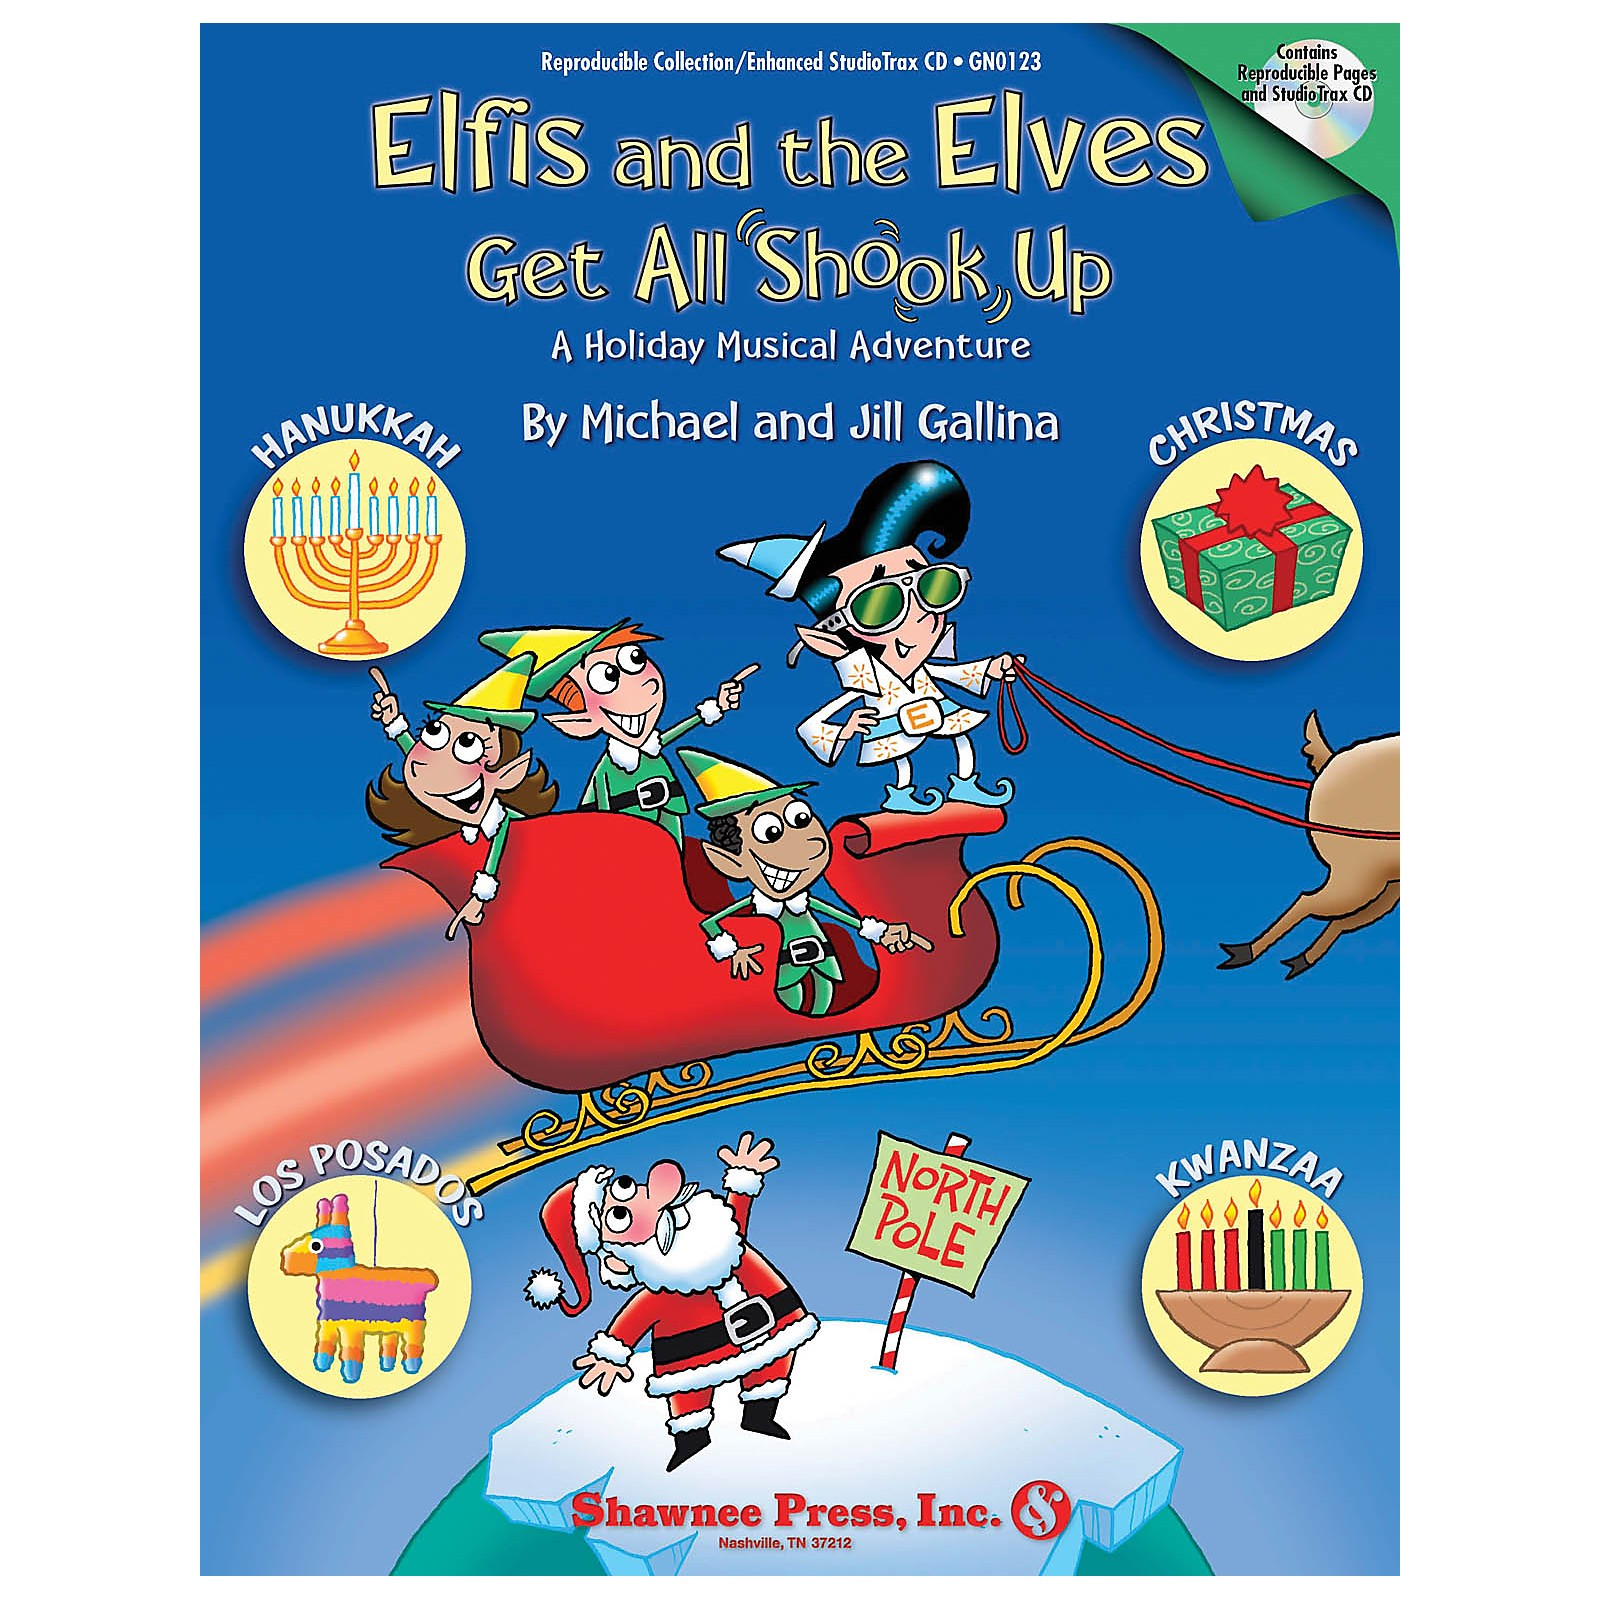 Shawnee Press Elfis and the Elves Get All Shook Up - A Holiday Musical Adventure CLASSRM KIT composed by Jill Gallina